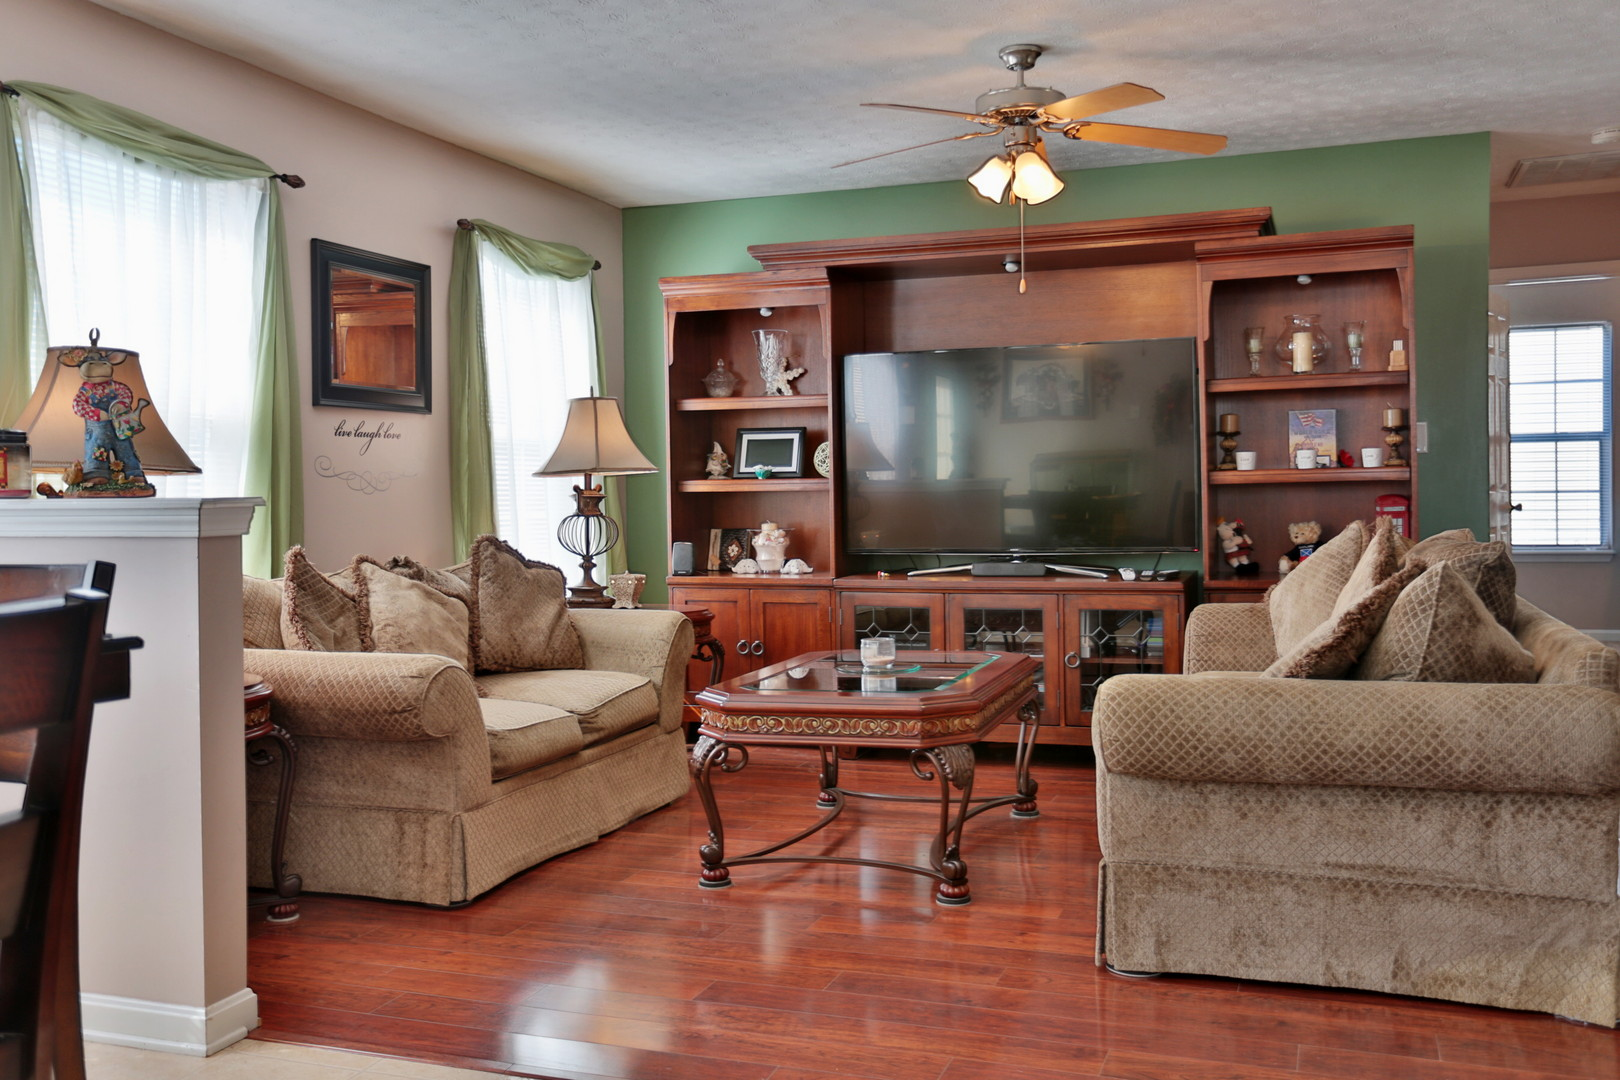 542 Oak Grove Blvd. Shepherdsville, KY 40165 Living Room